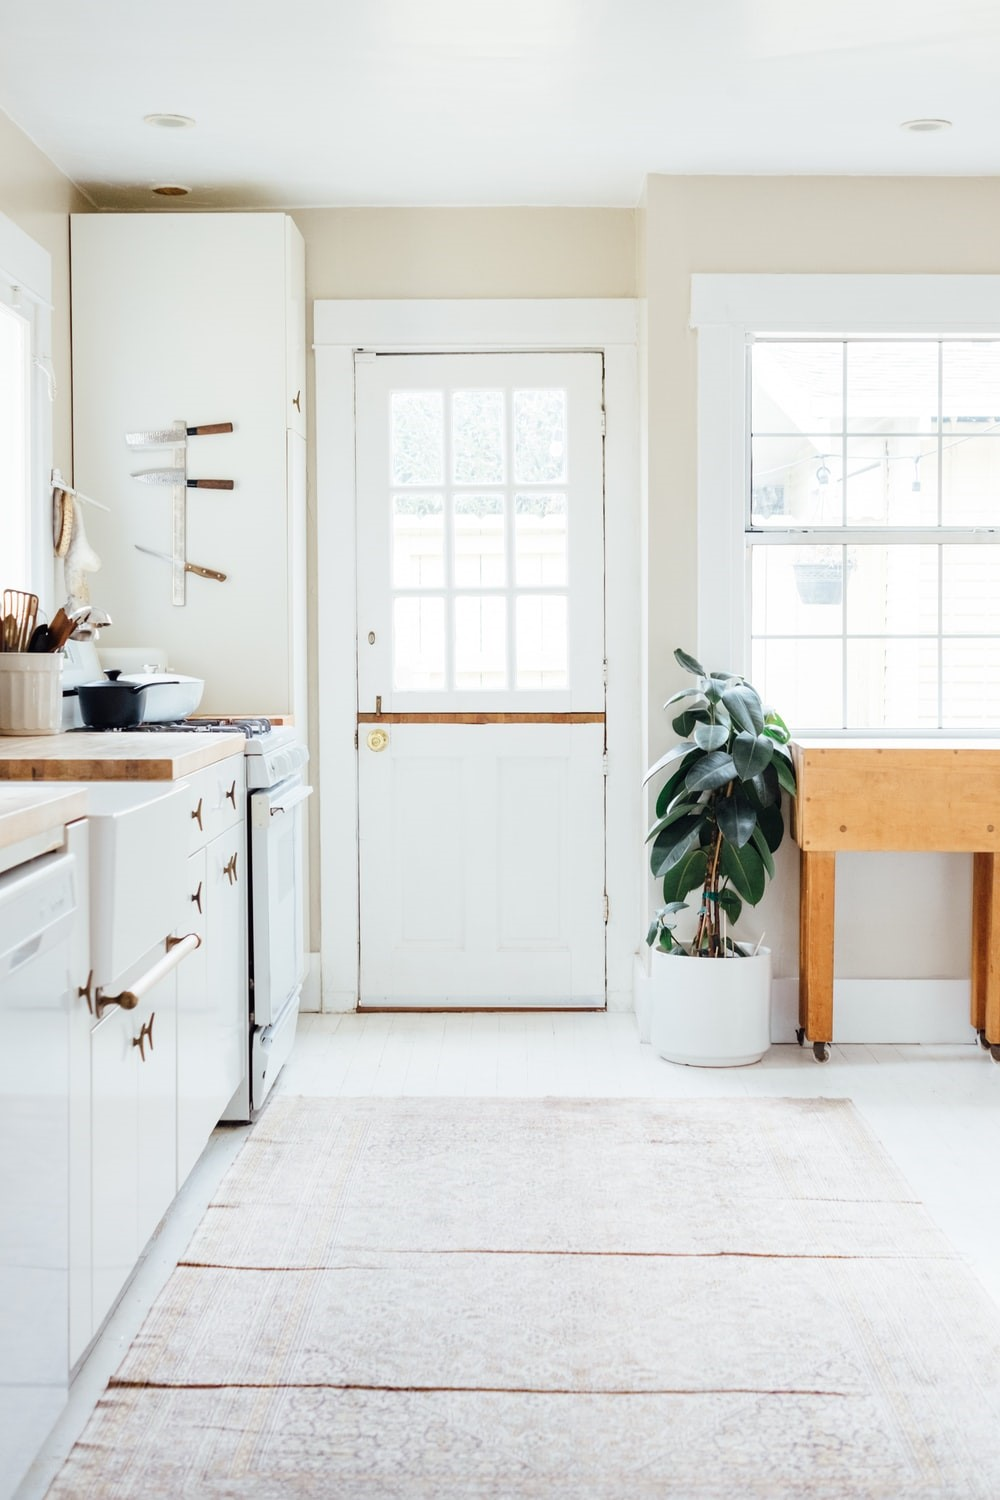 image - Making Space Work for Your Home, 6 Tips to Keep in Mind